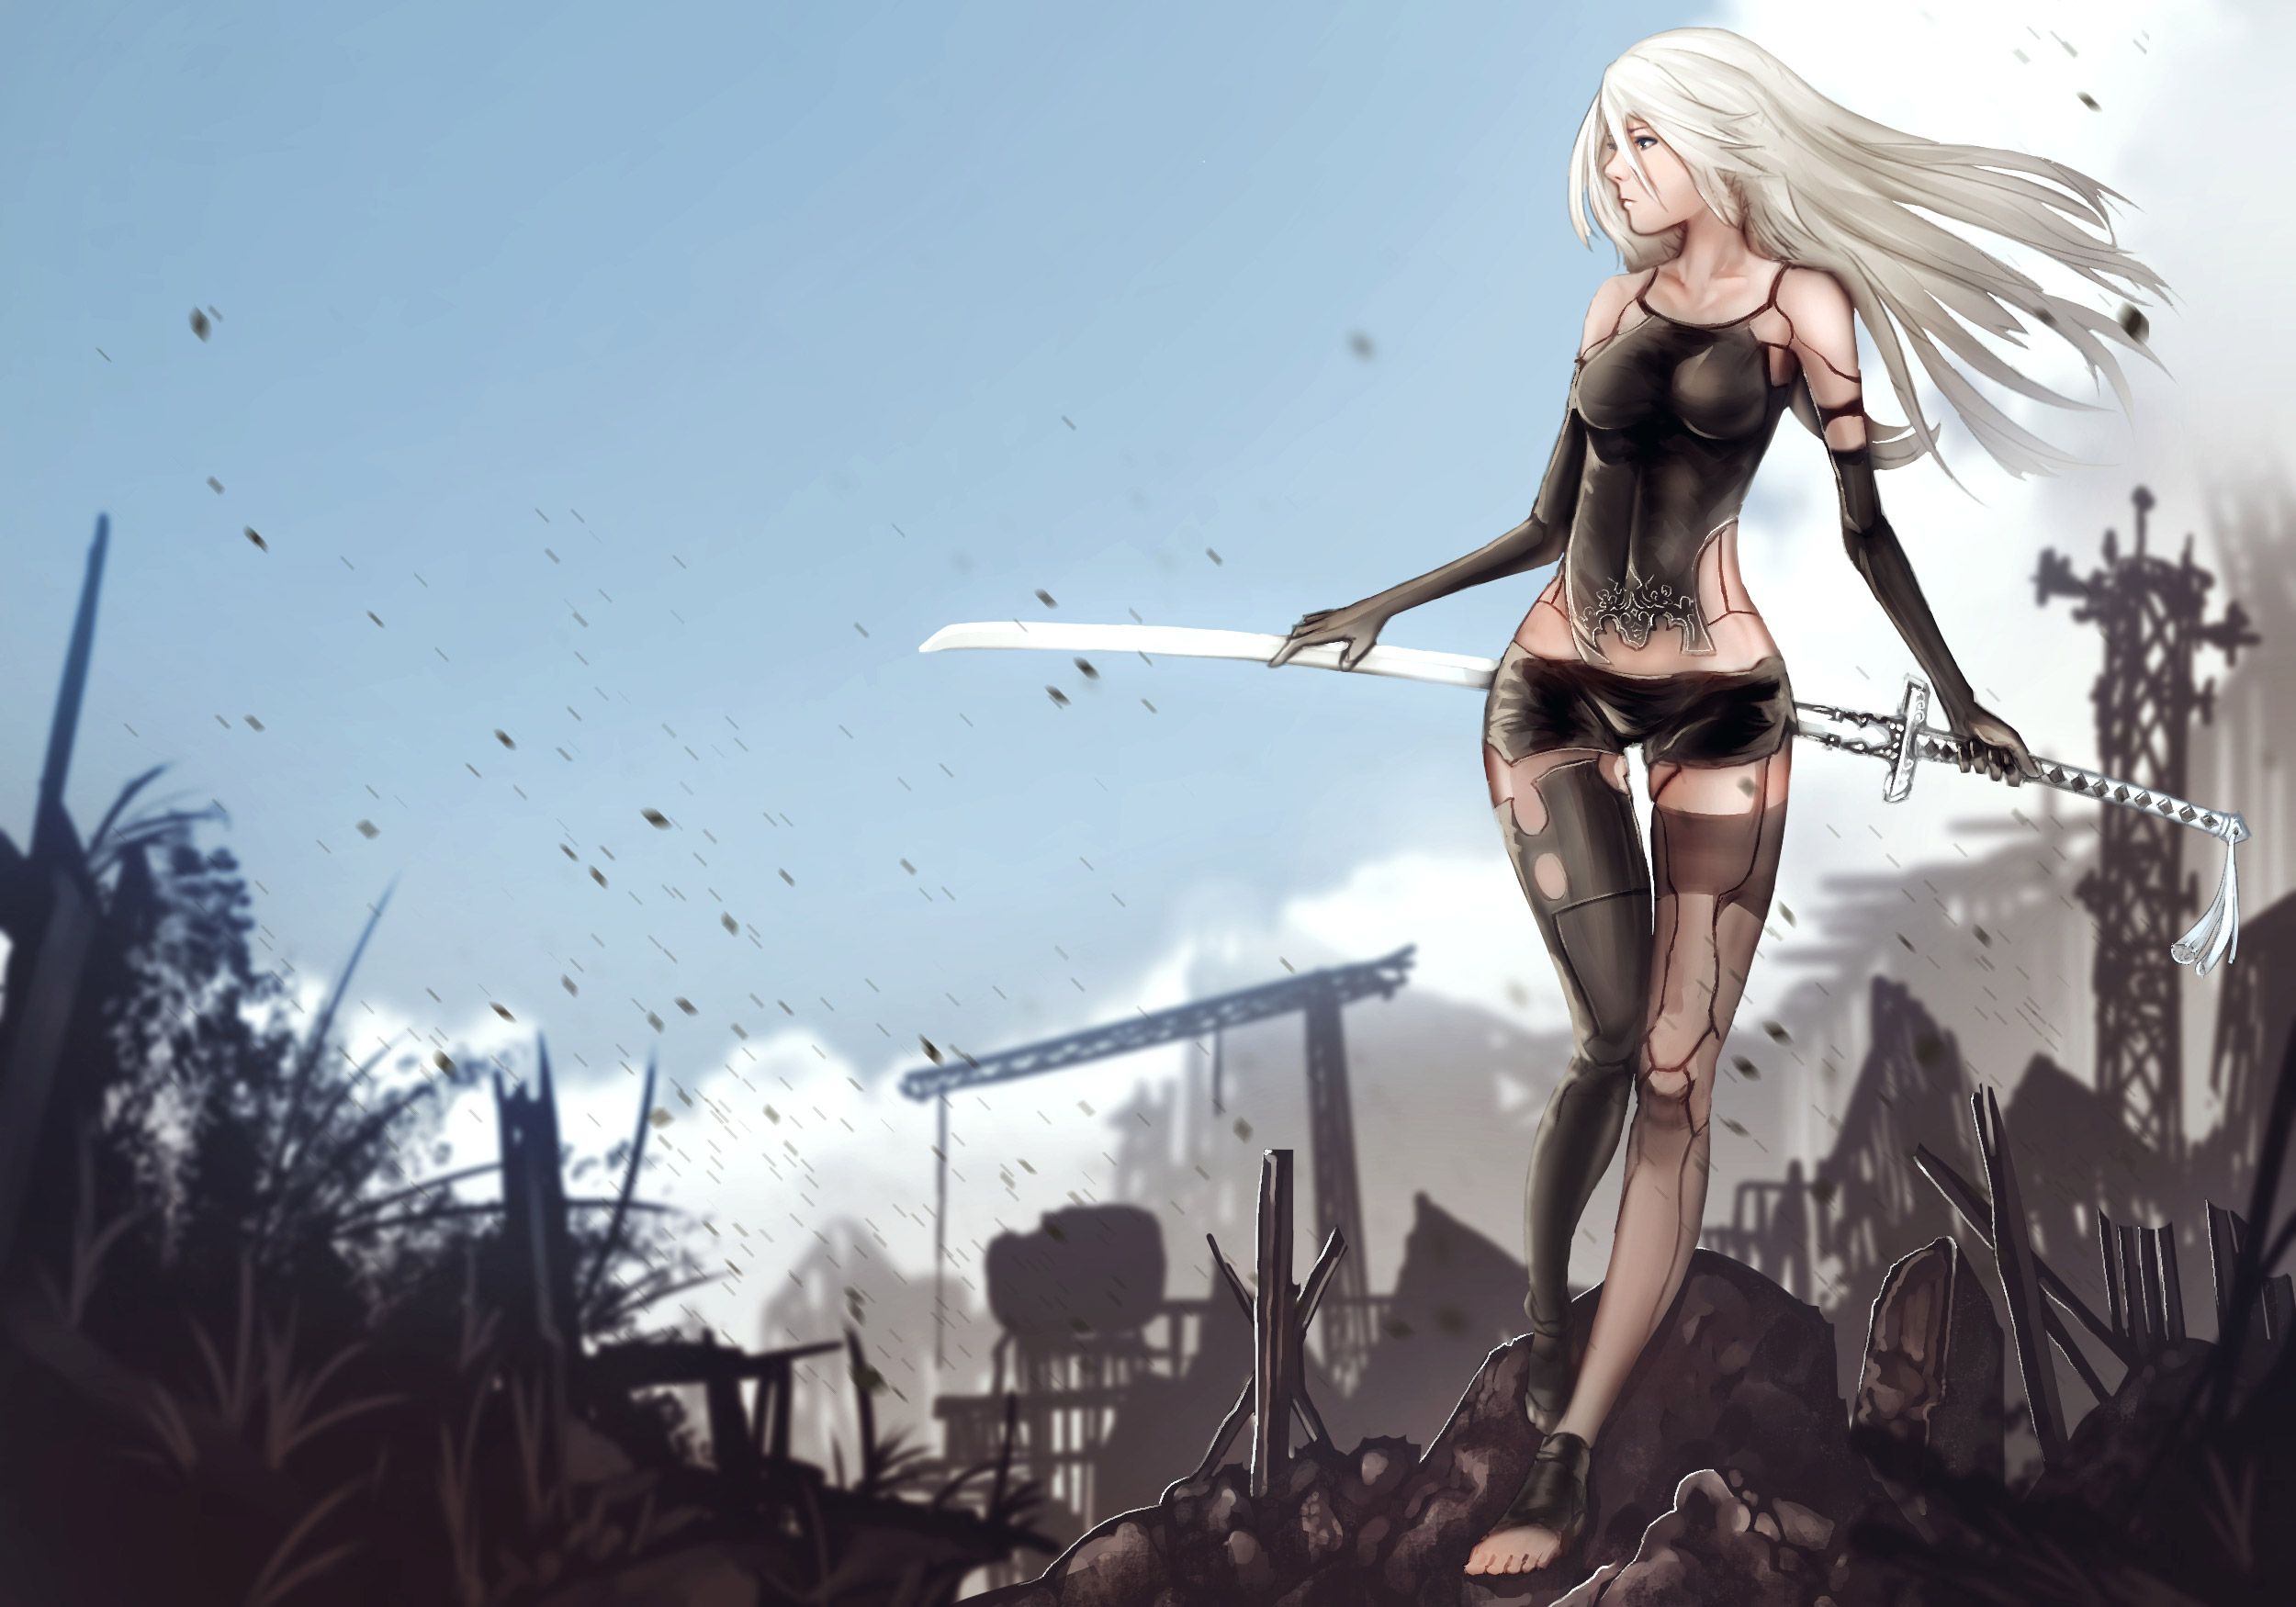 Nier Automata Fantasy Game Art Full Hd Wallpaper: NieR Automata YoRHa Type A No2, HD Games, 4k Wallpapers